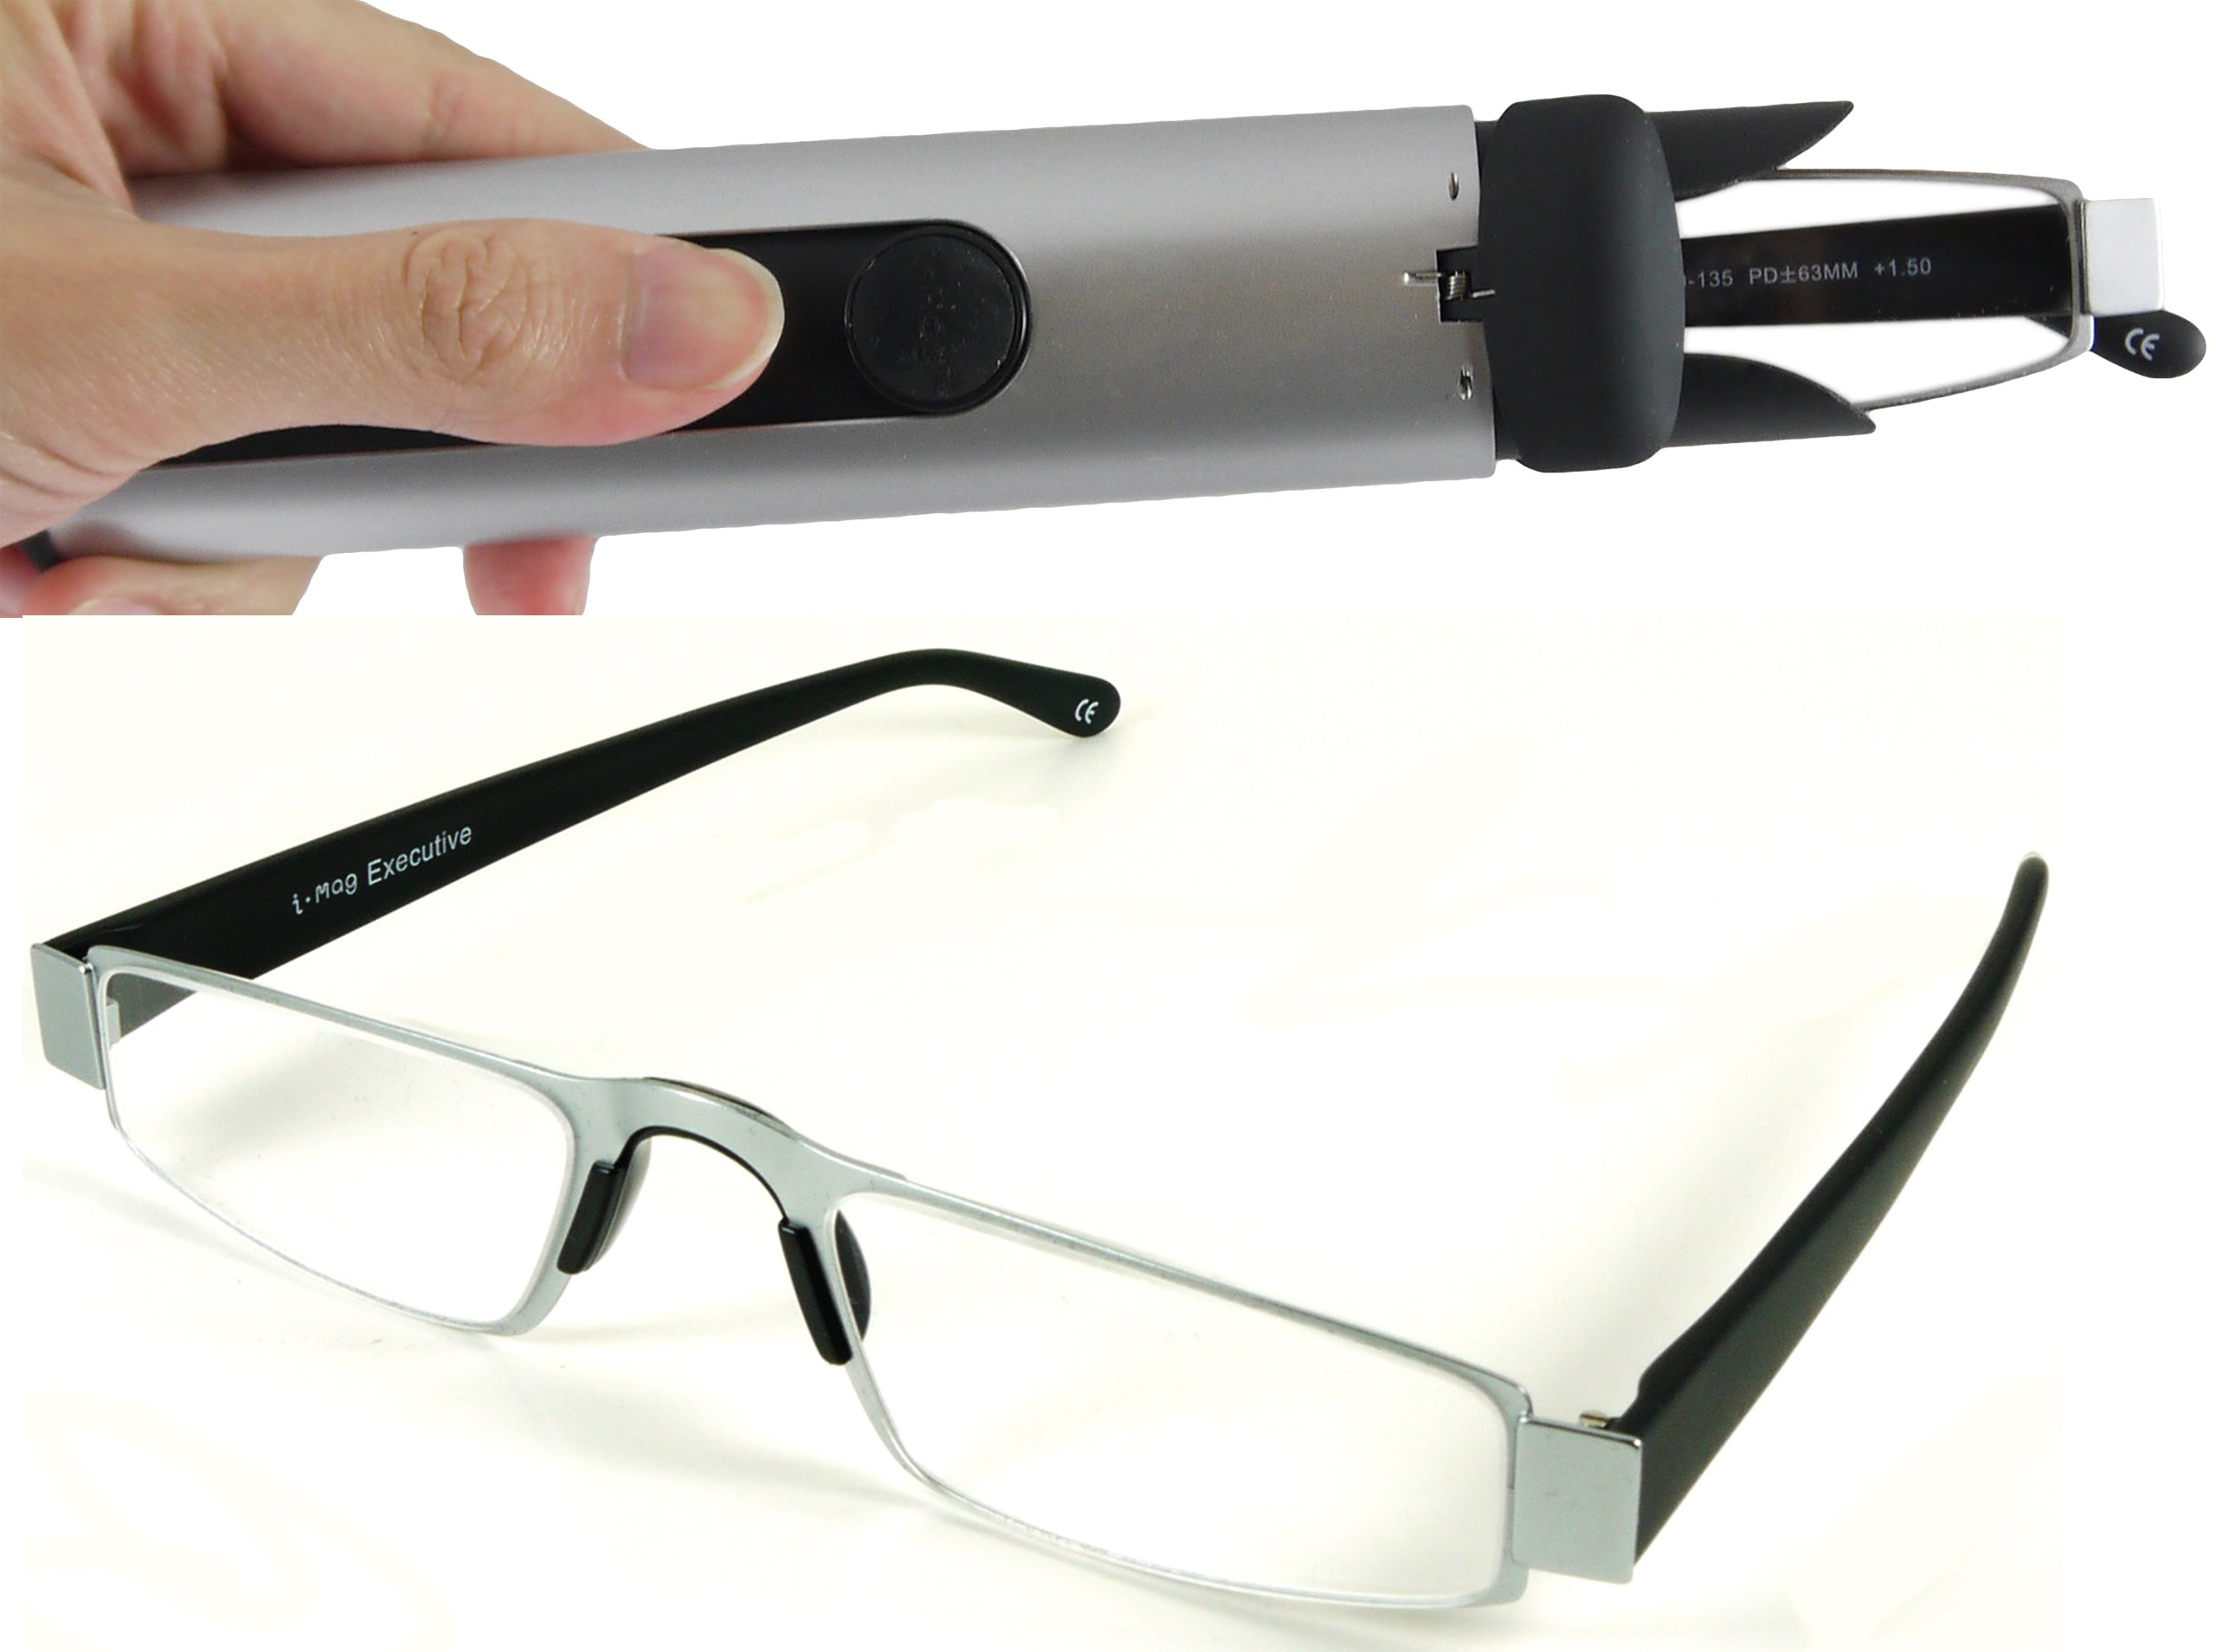 I-Mag Executive Slim Metal Reading Glasses with Slide Open Hard Case (+3.00, Silver)